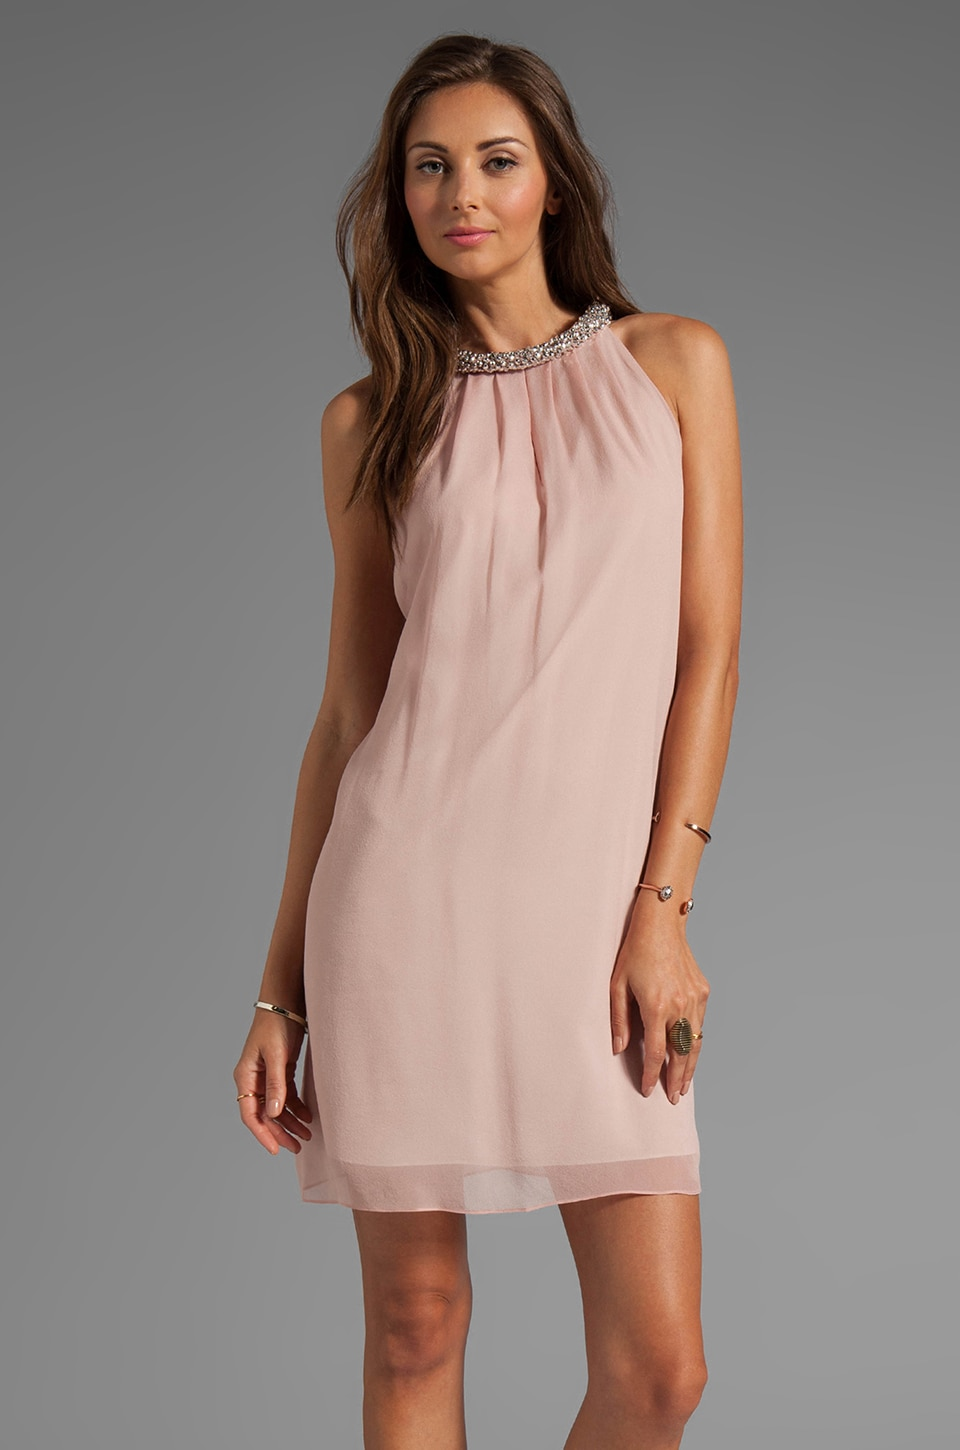 Diane von Furstenberg Lainey Dress in Blush